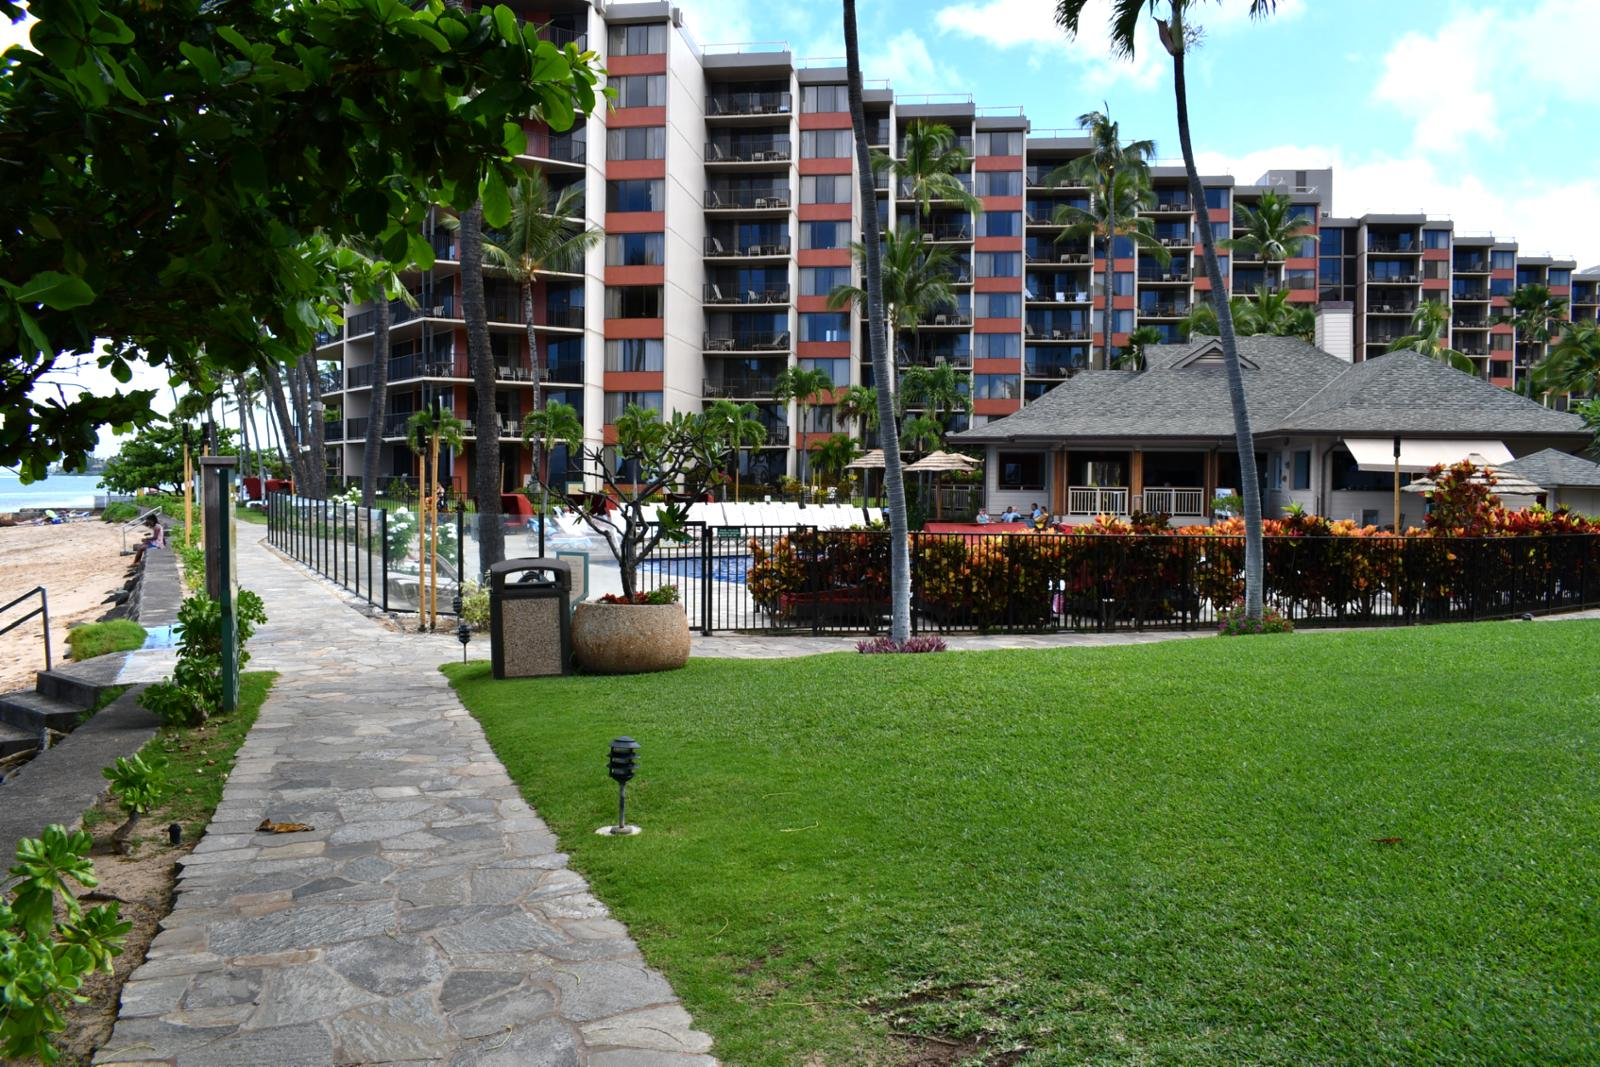 Beachfront walking paths with adjacent shower